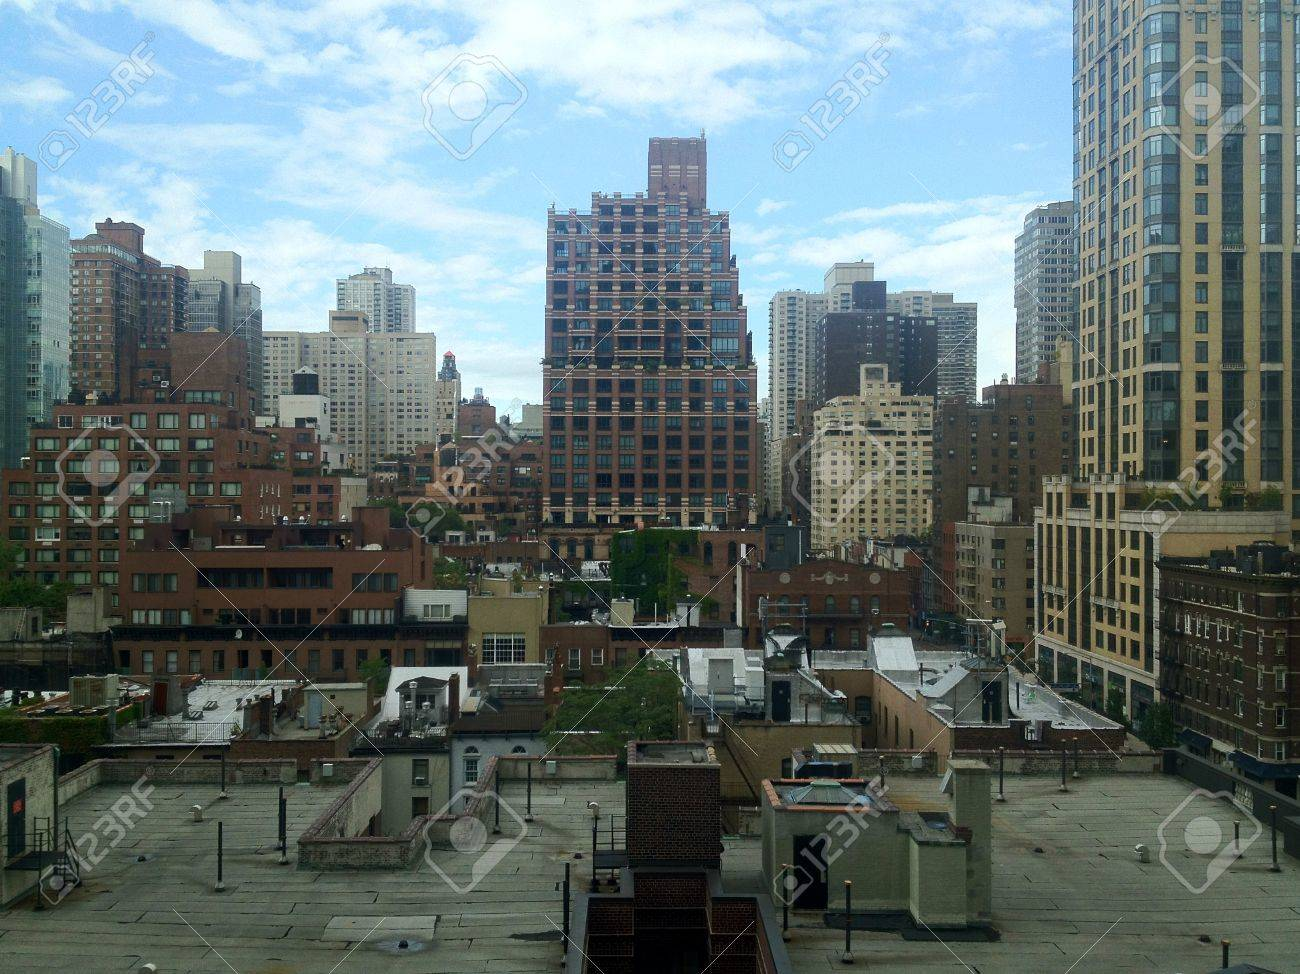 View over the roofs of East Midtown Manhattan in New York, NY, USA. Stock Photo - 19231186